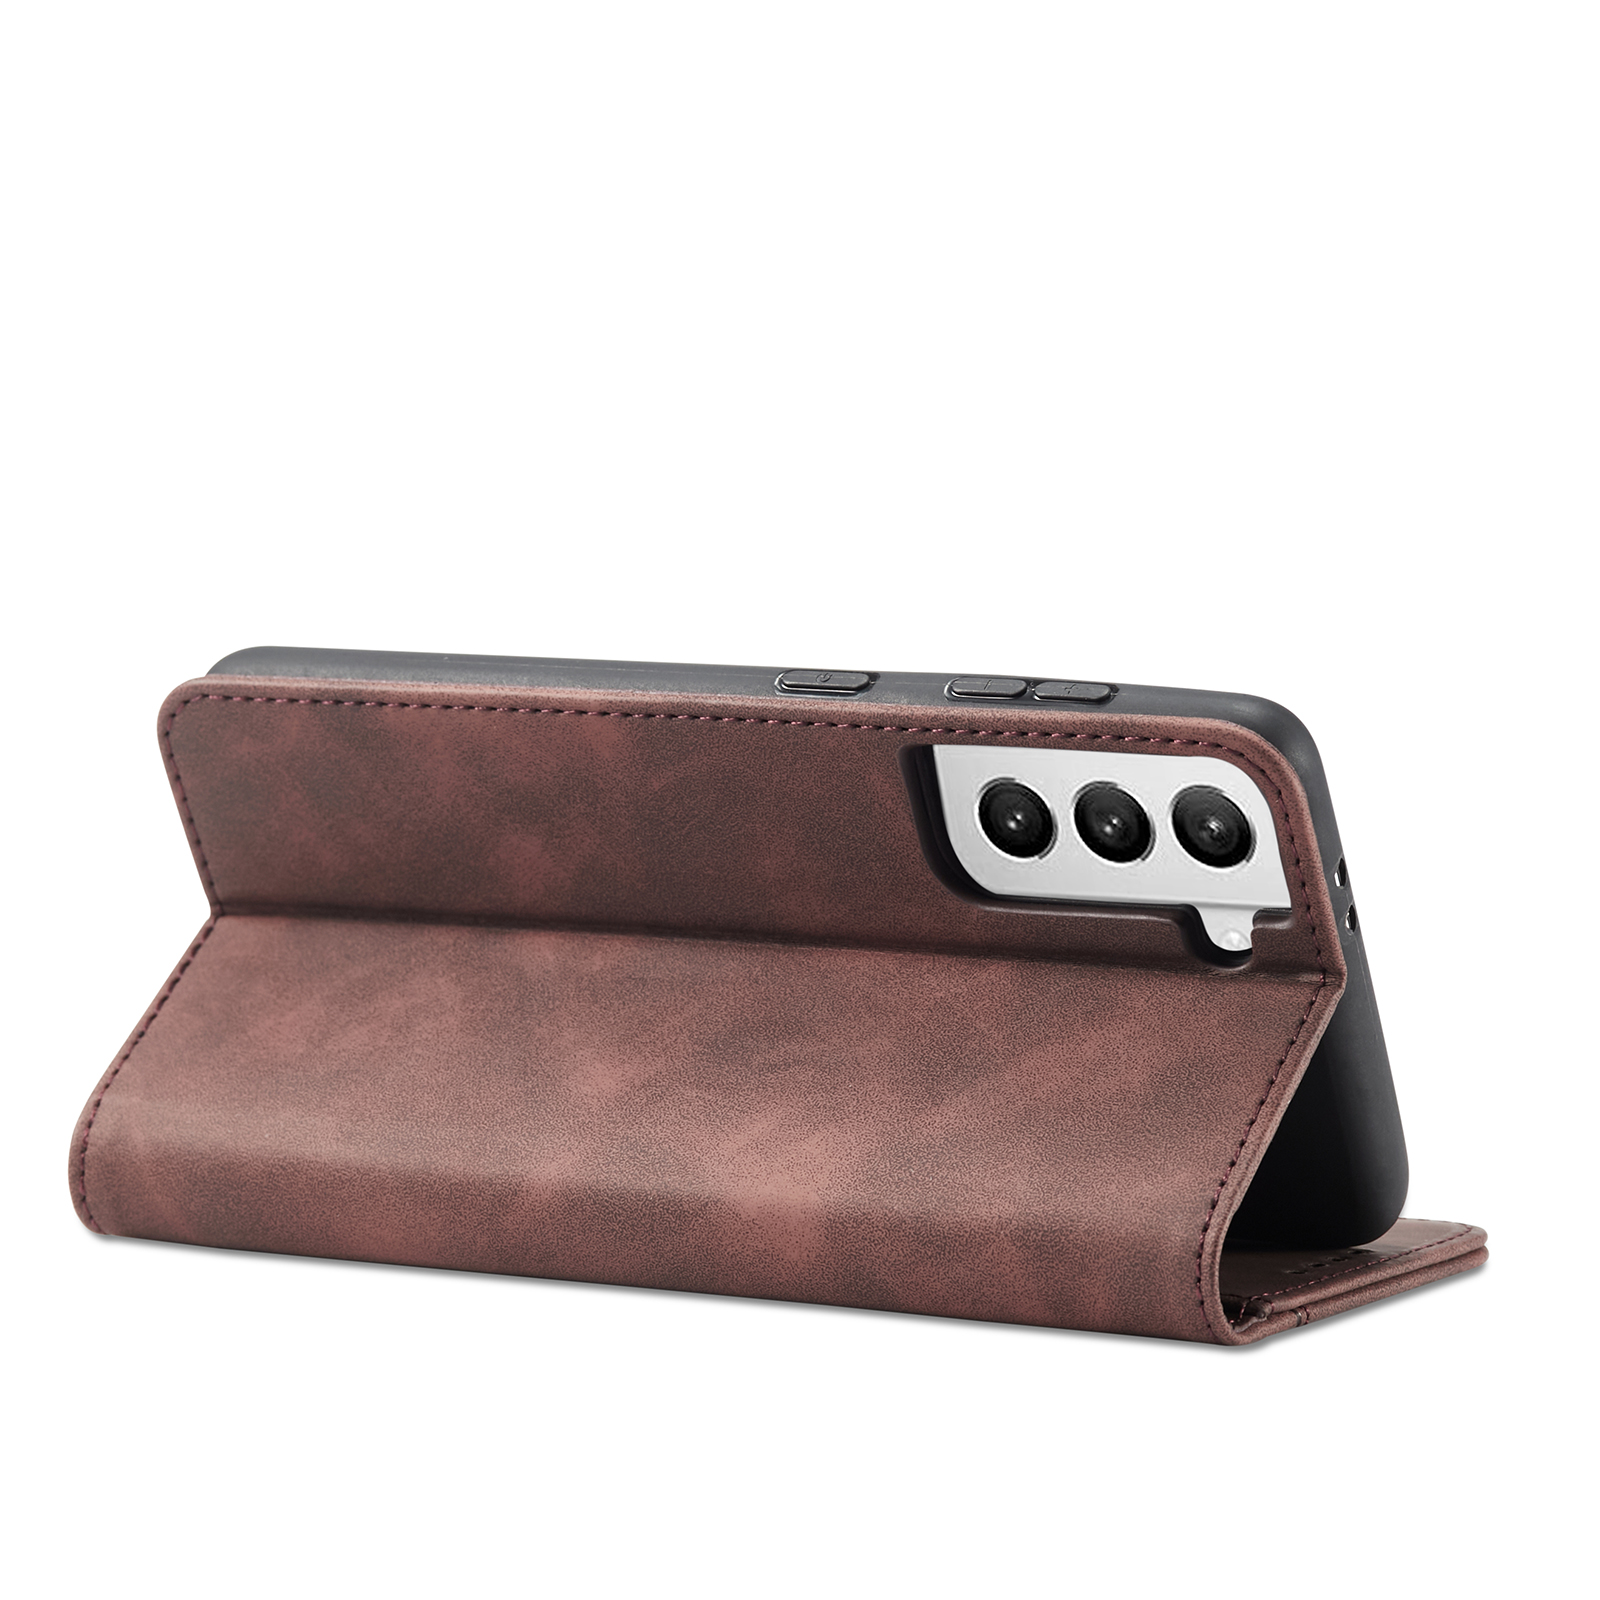 Mobile Phone Case For Samsung S30 Flip Phone Case Protective Case Cover Brown